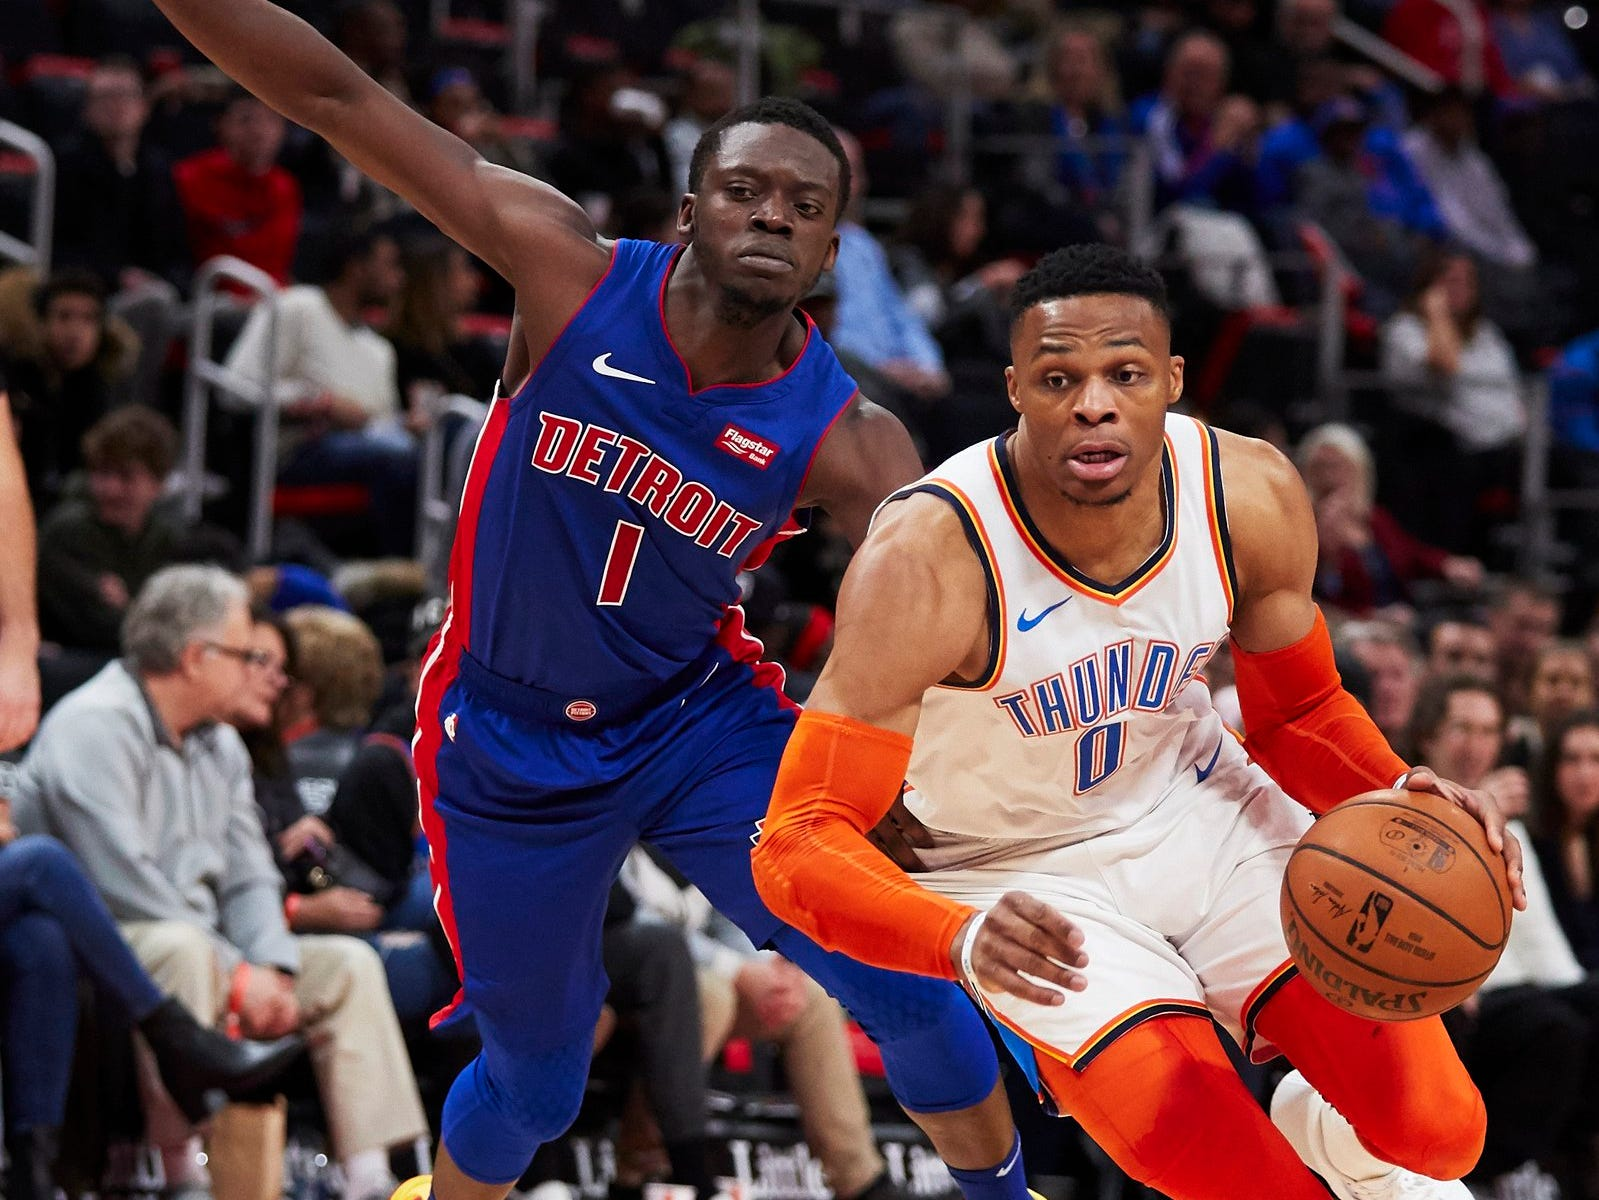 Oklahoma City Thunder guard Russell Westbrook (0) dribbles past Detroit Pistons guard Reggie Jackson (1) in the first half at Little Caesars Arena.